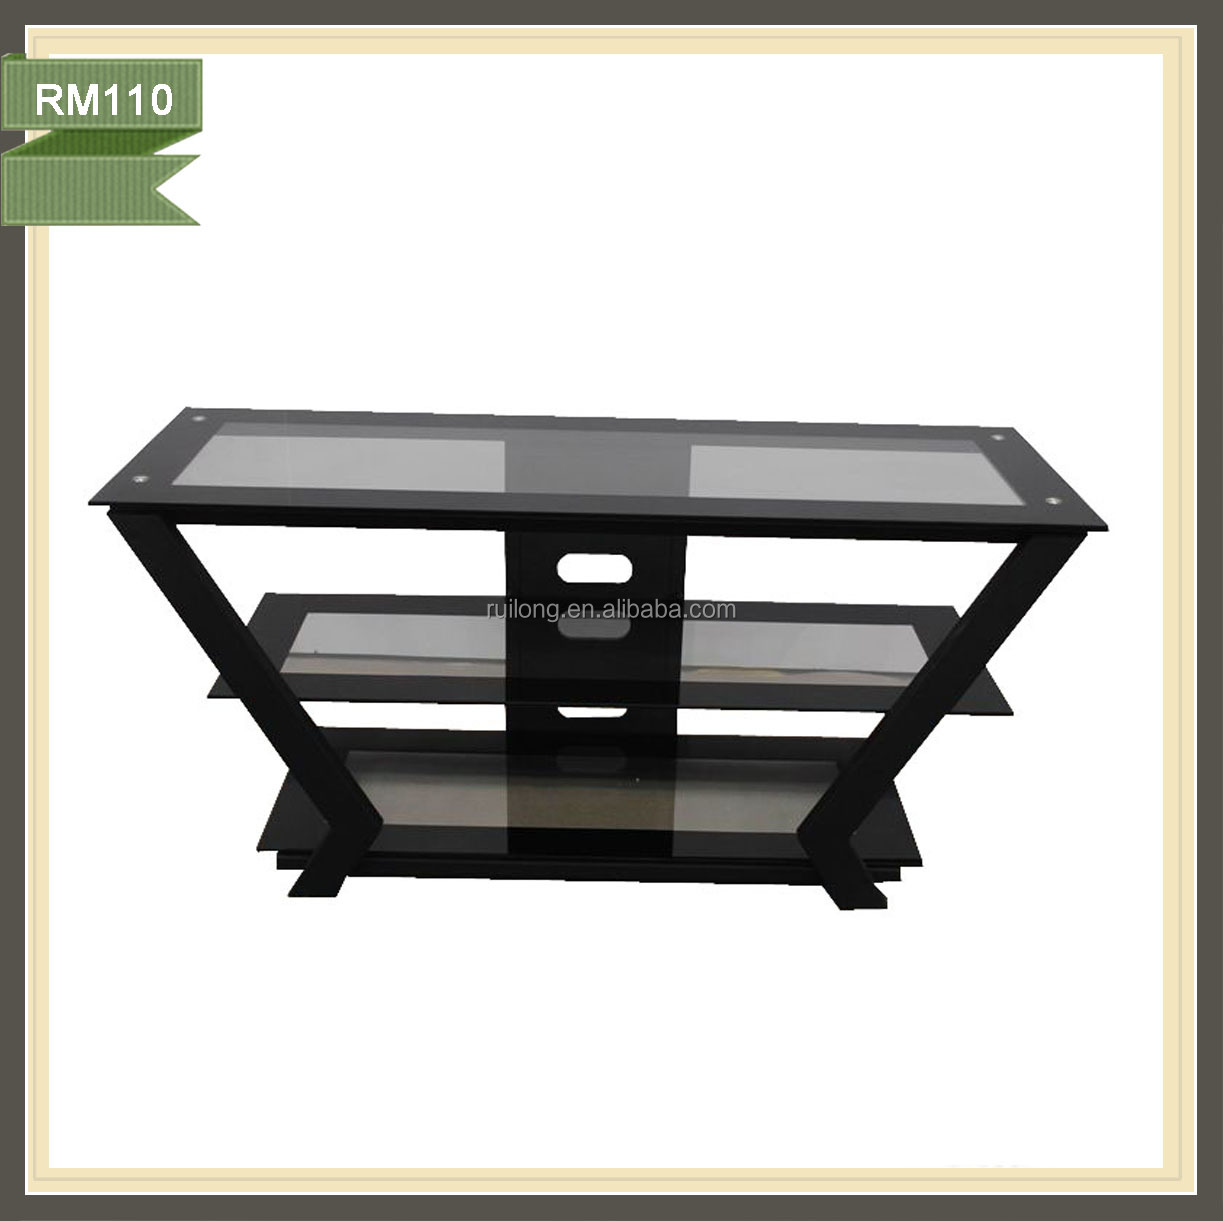 pirate chest wooden design wooden motor for tv lift GLASS TV STAND